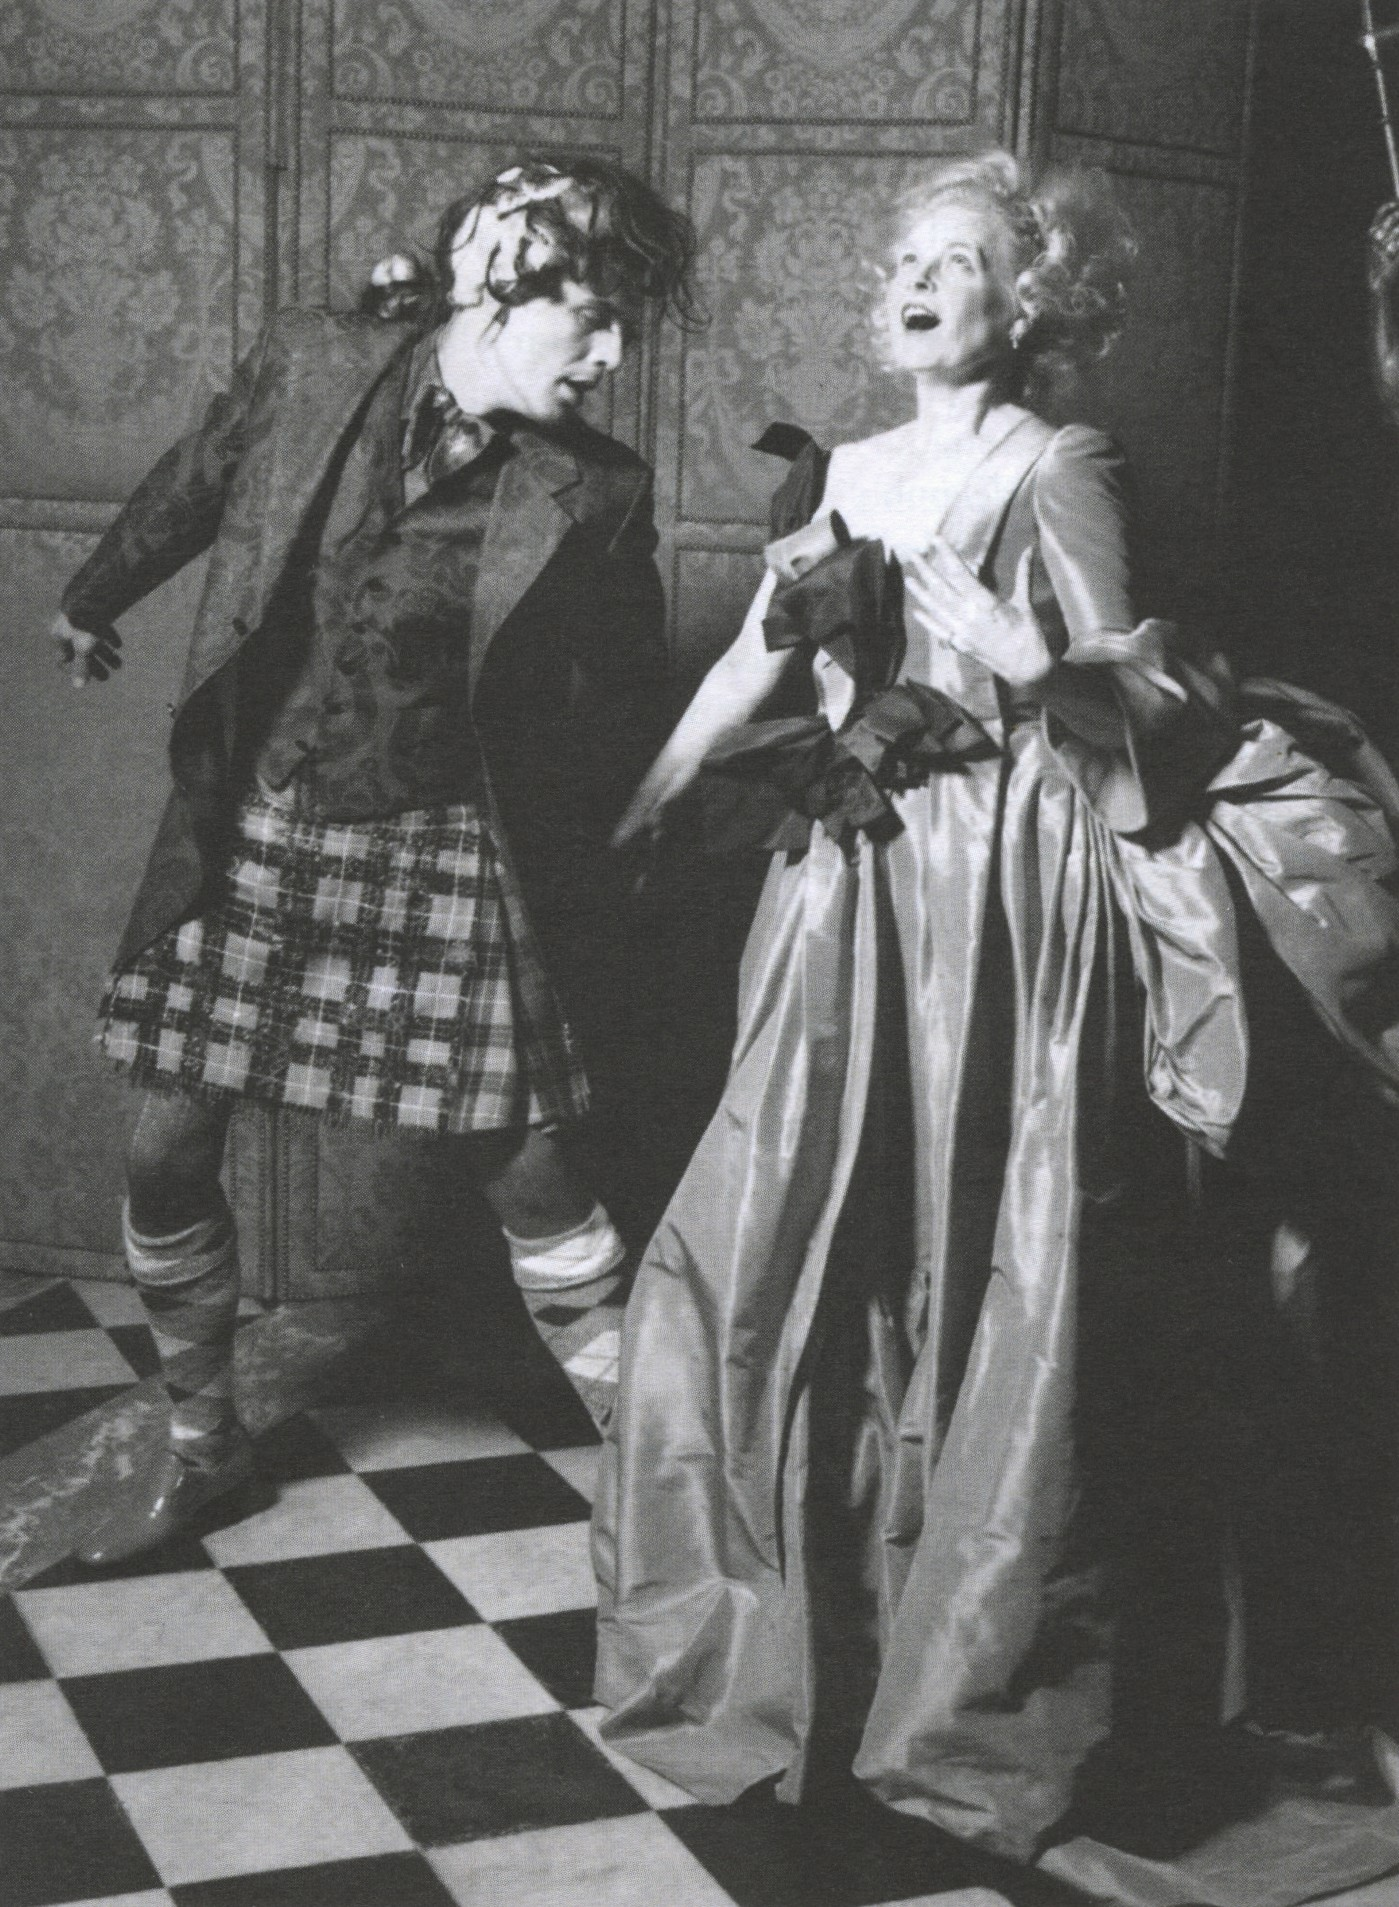 VIVIENNE WESTWOOD AND ANDREAS KRONTHALER | PHOTOGRAPHY KARL LAGERFELD | 1997